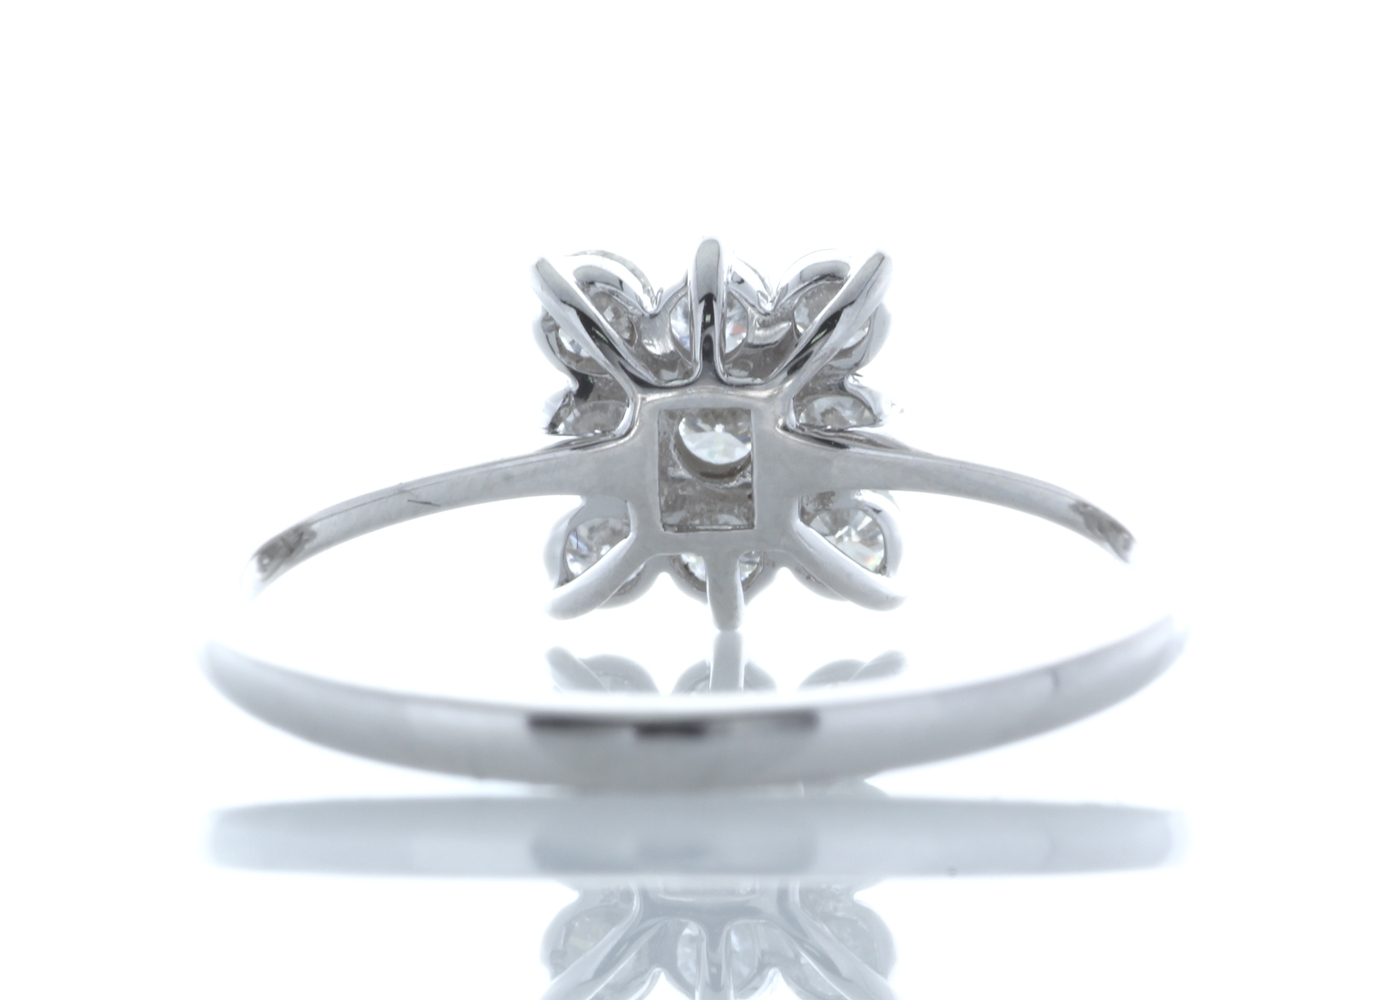 18ct White Gold Fancy Cluster Diamond Ring 0.45 Carats - Image 3 of 4